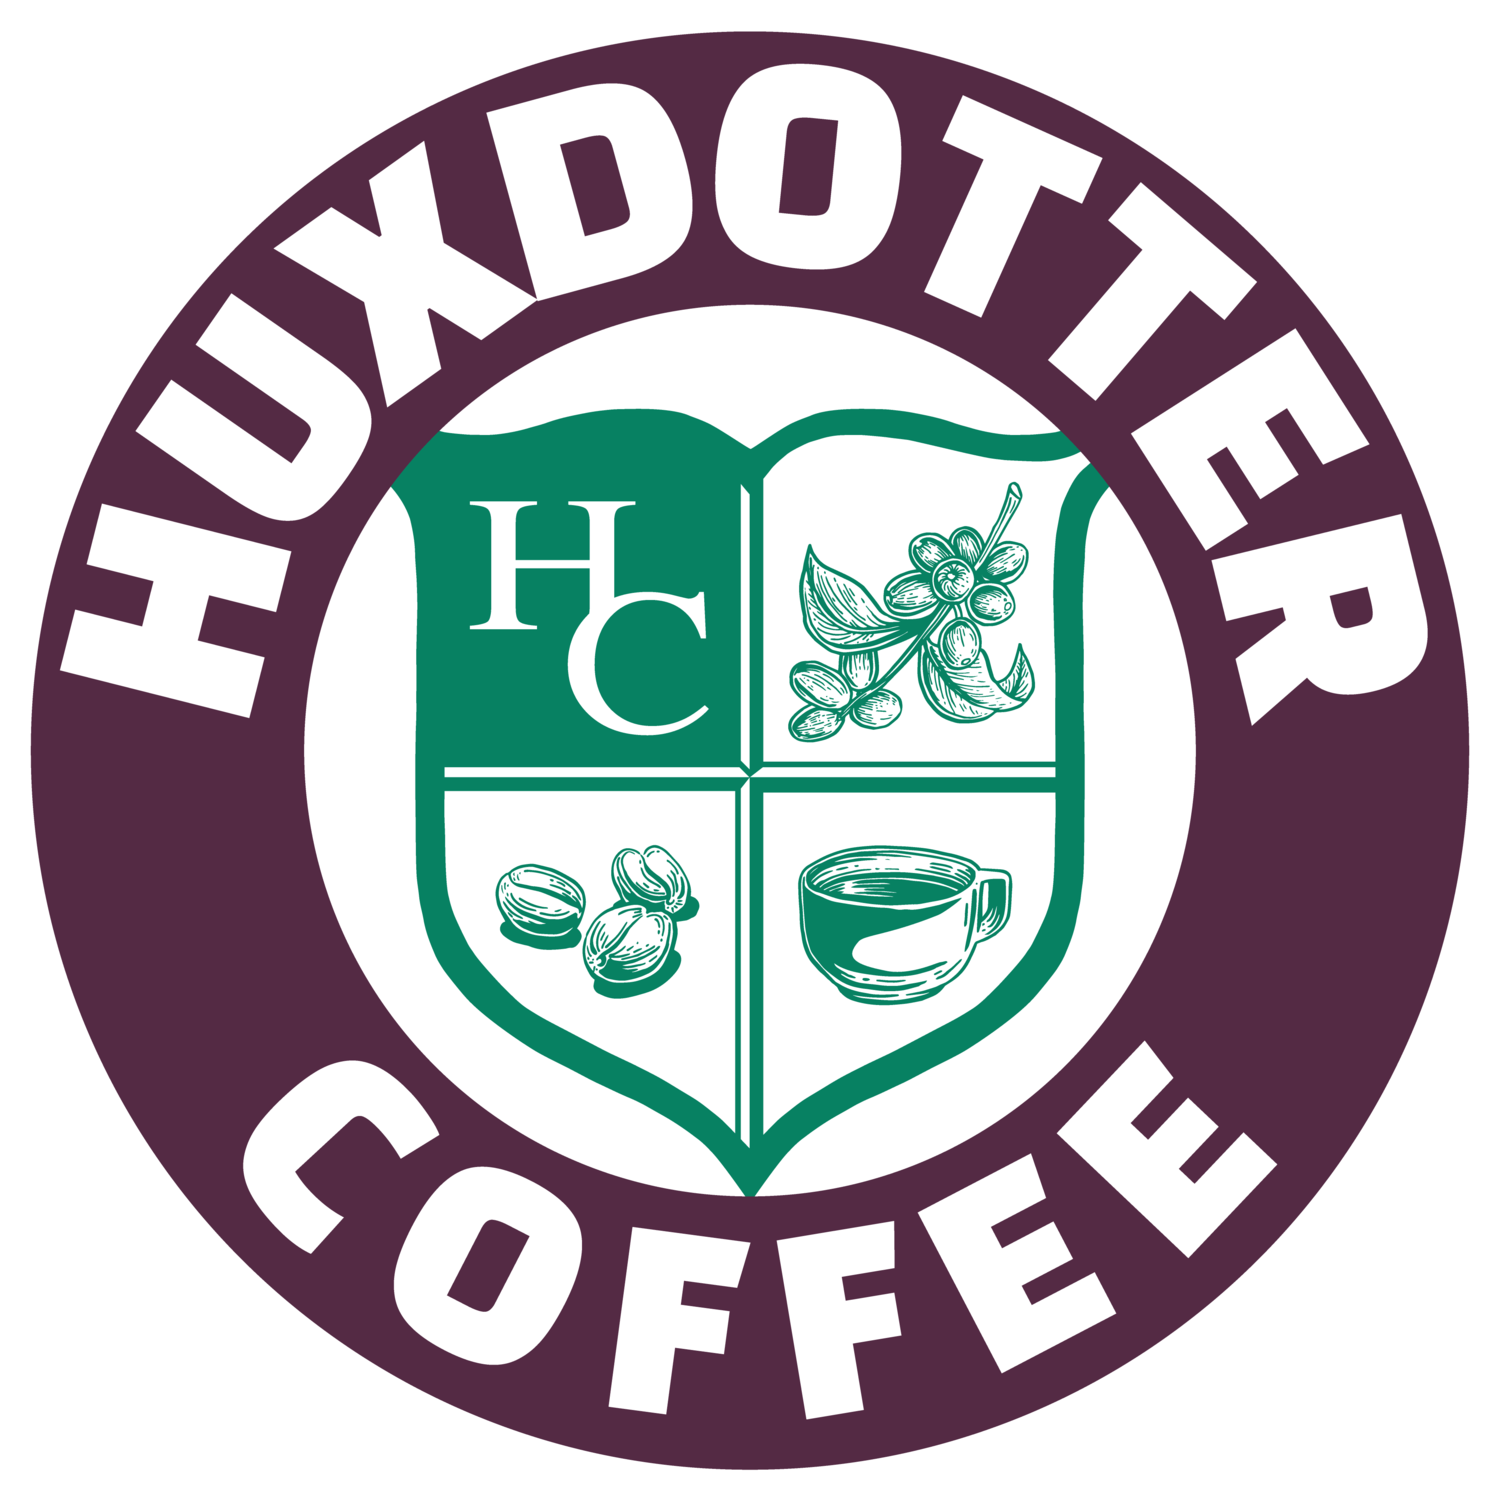 Huxdotter Coffee - North Bend, Snoqualmie, Madrona Coffee Co.